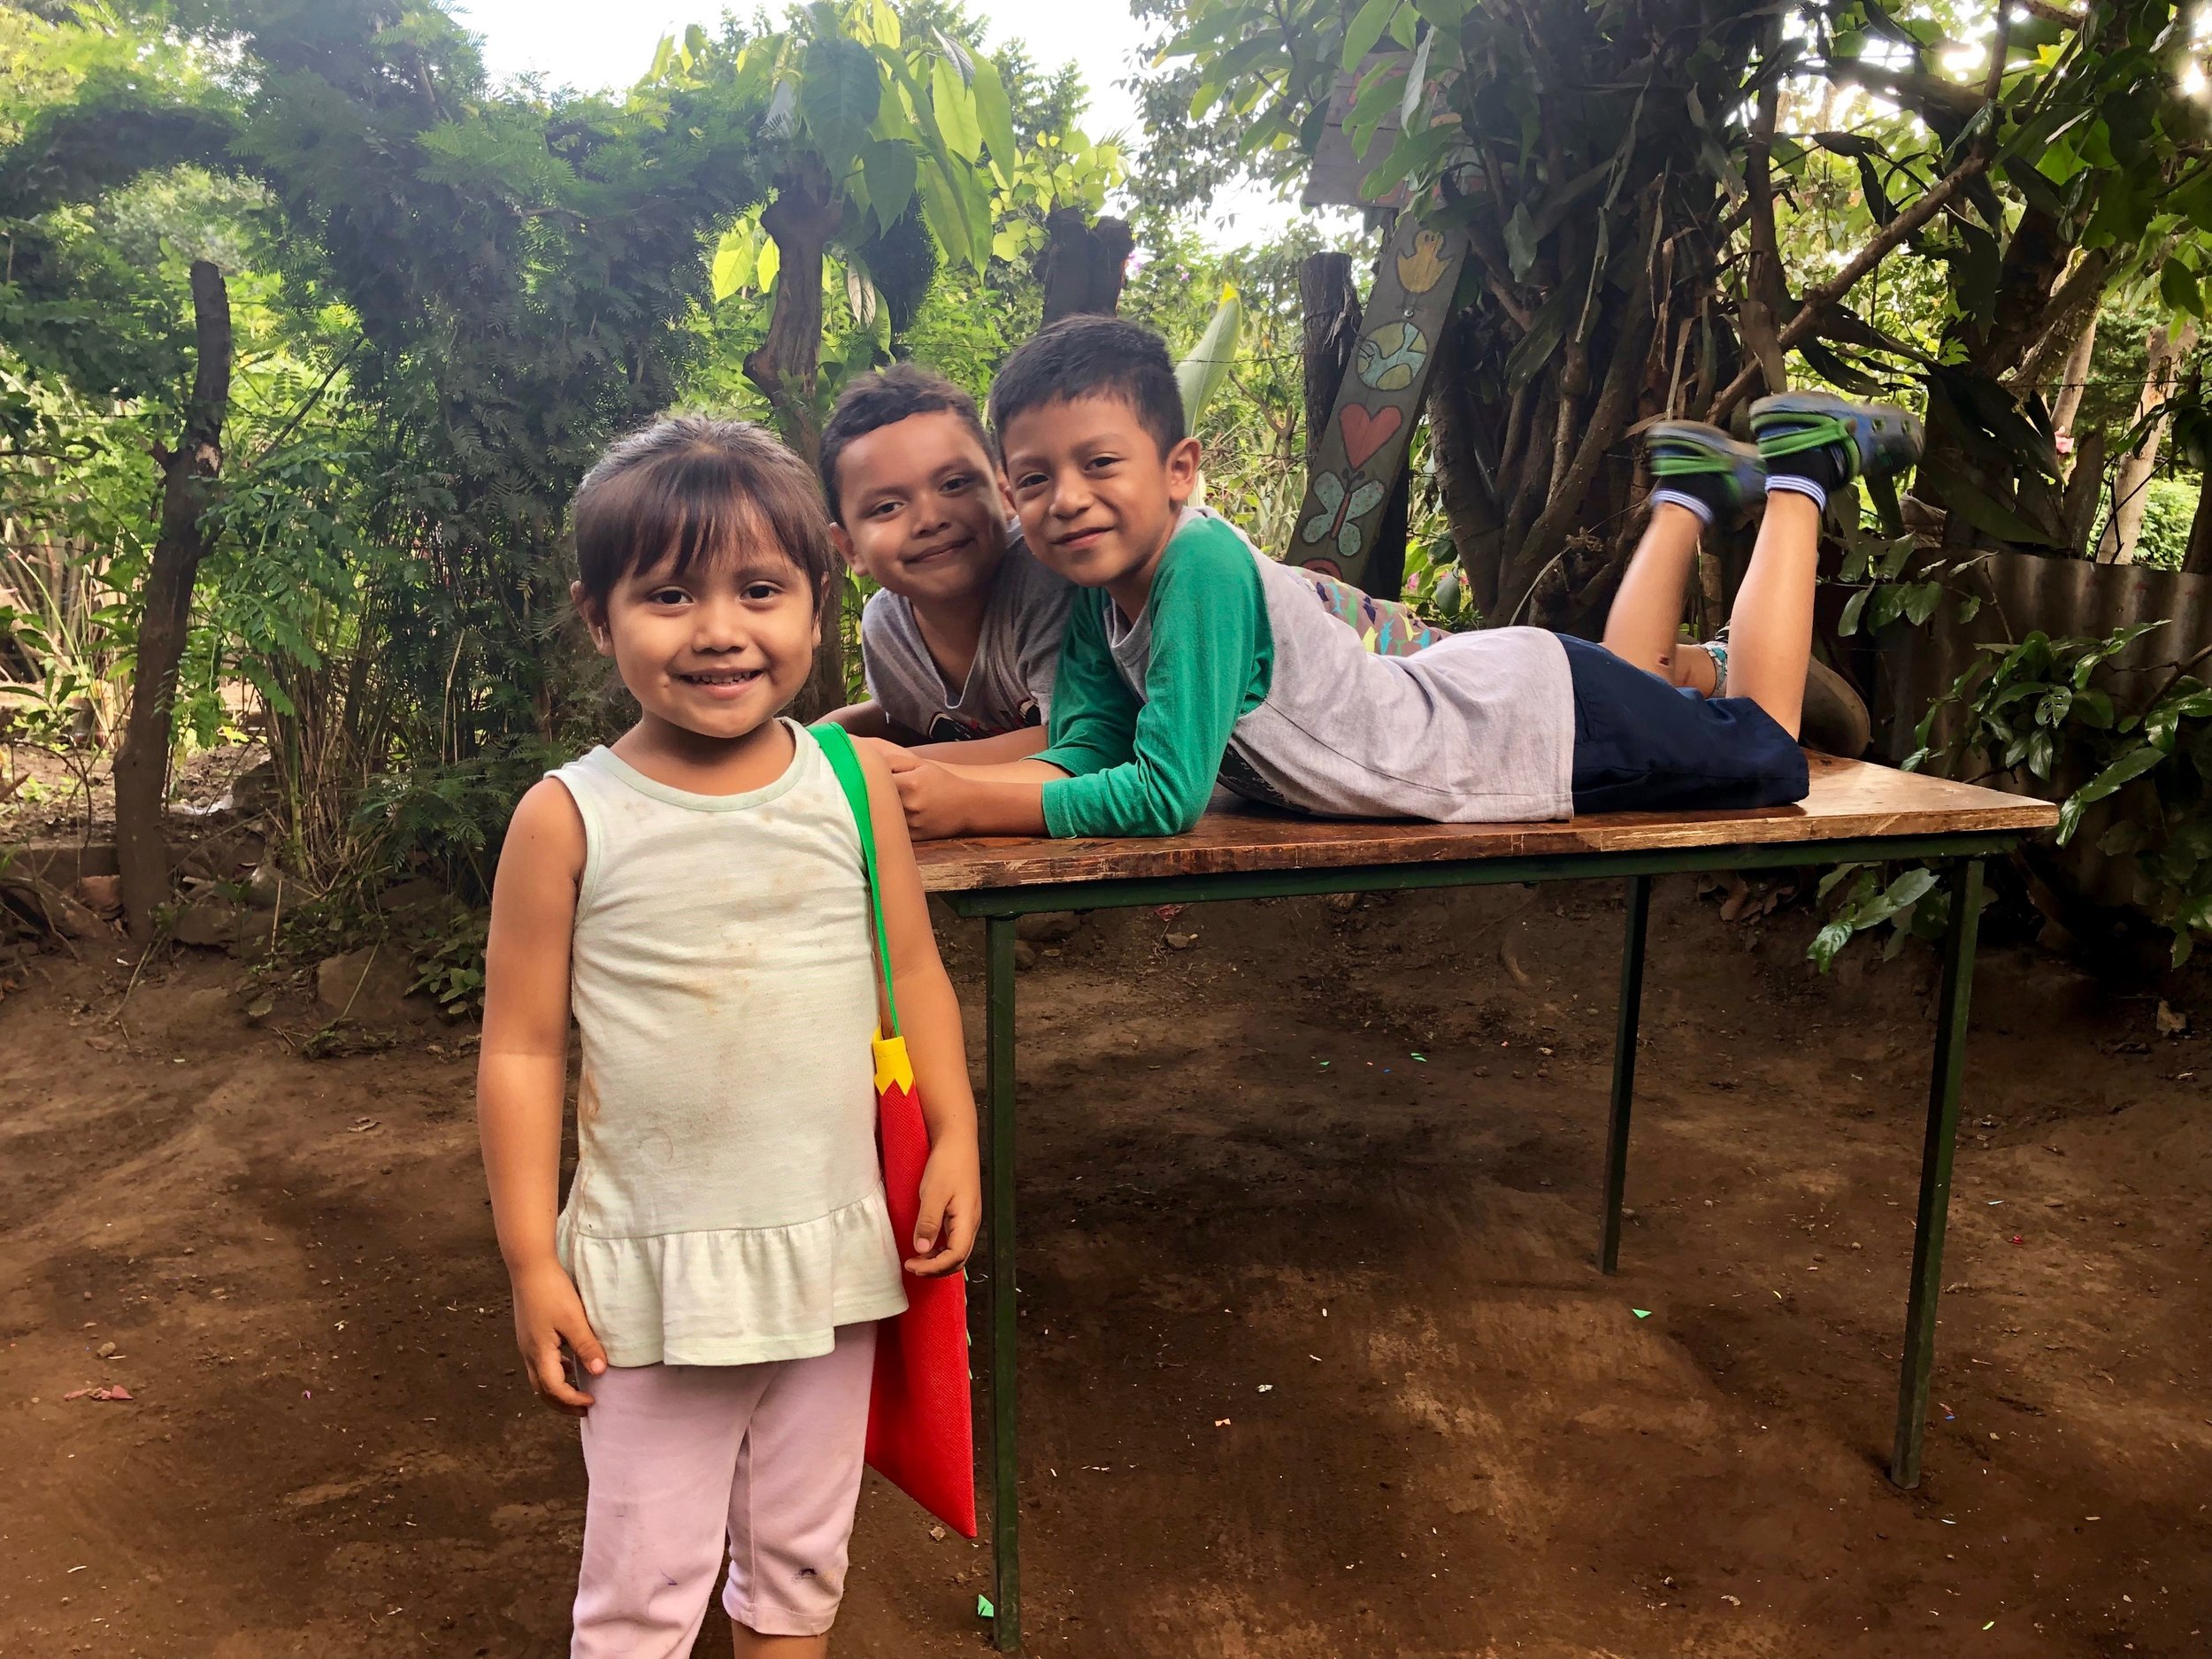 Children playing together in central Nicaragua, 2018.